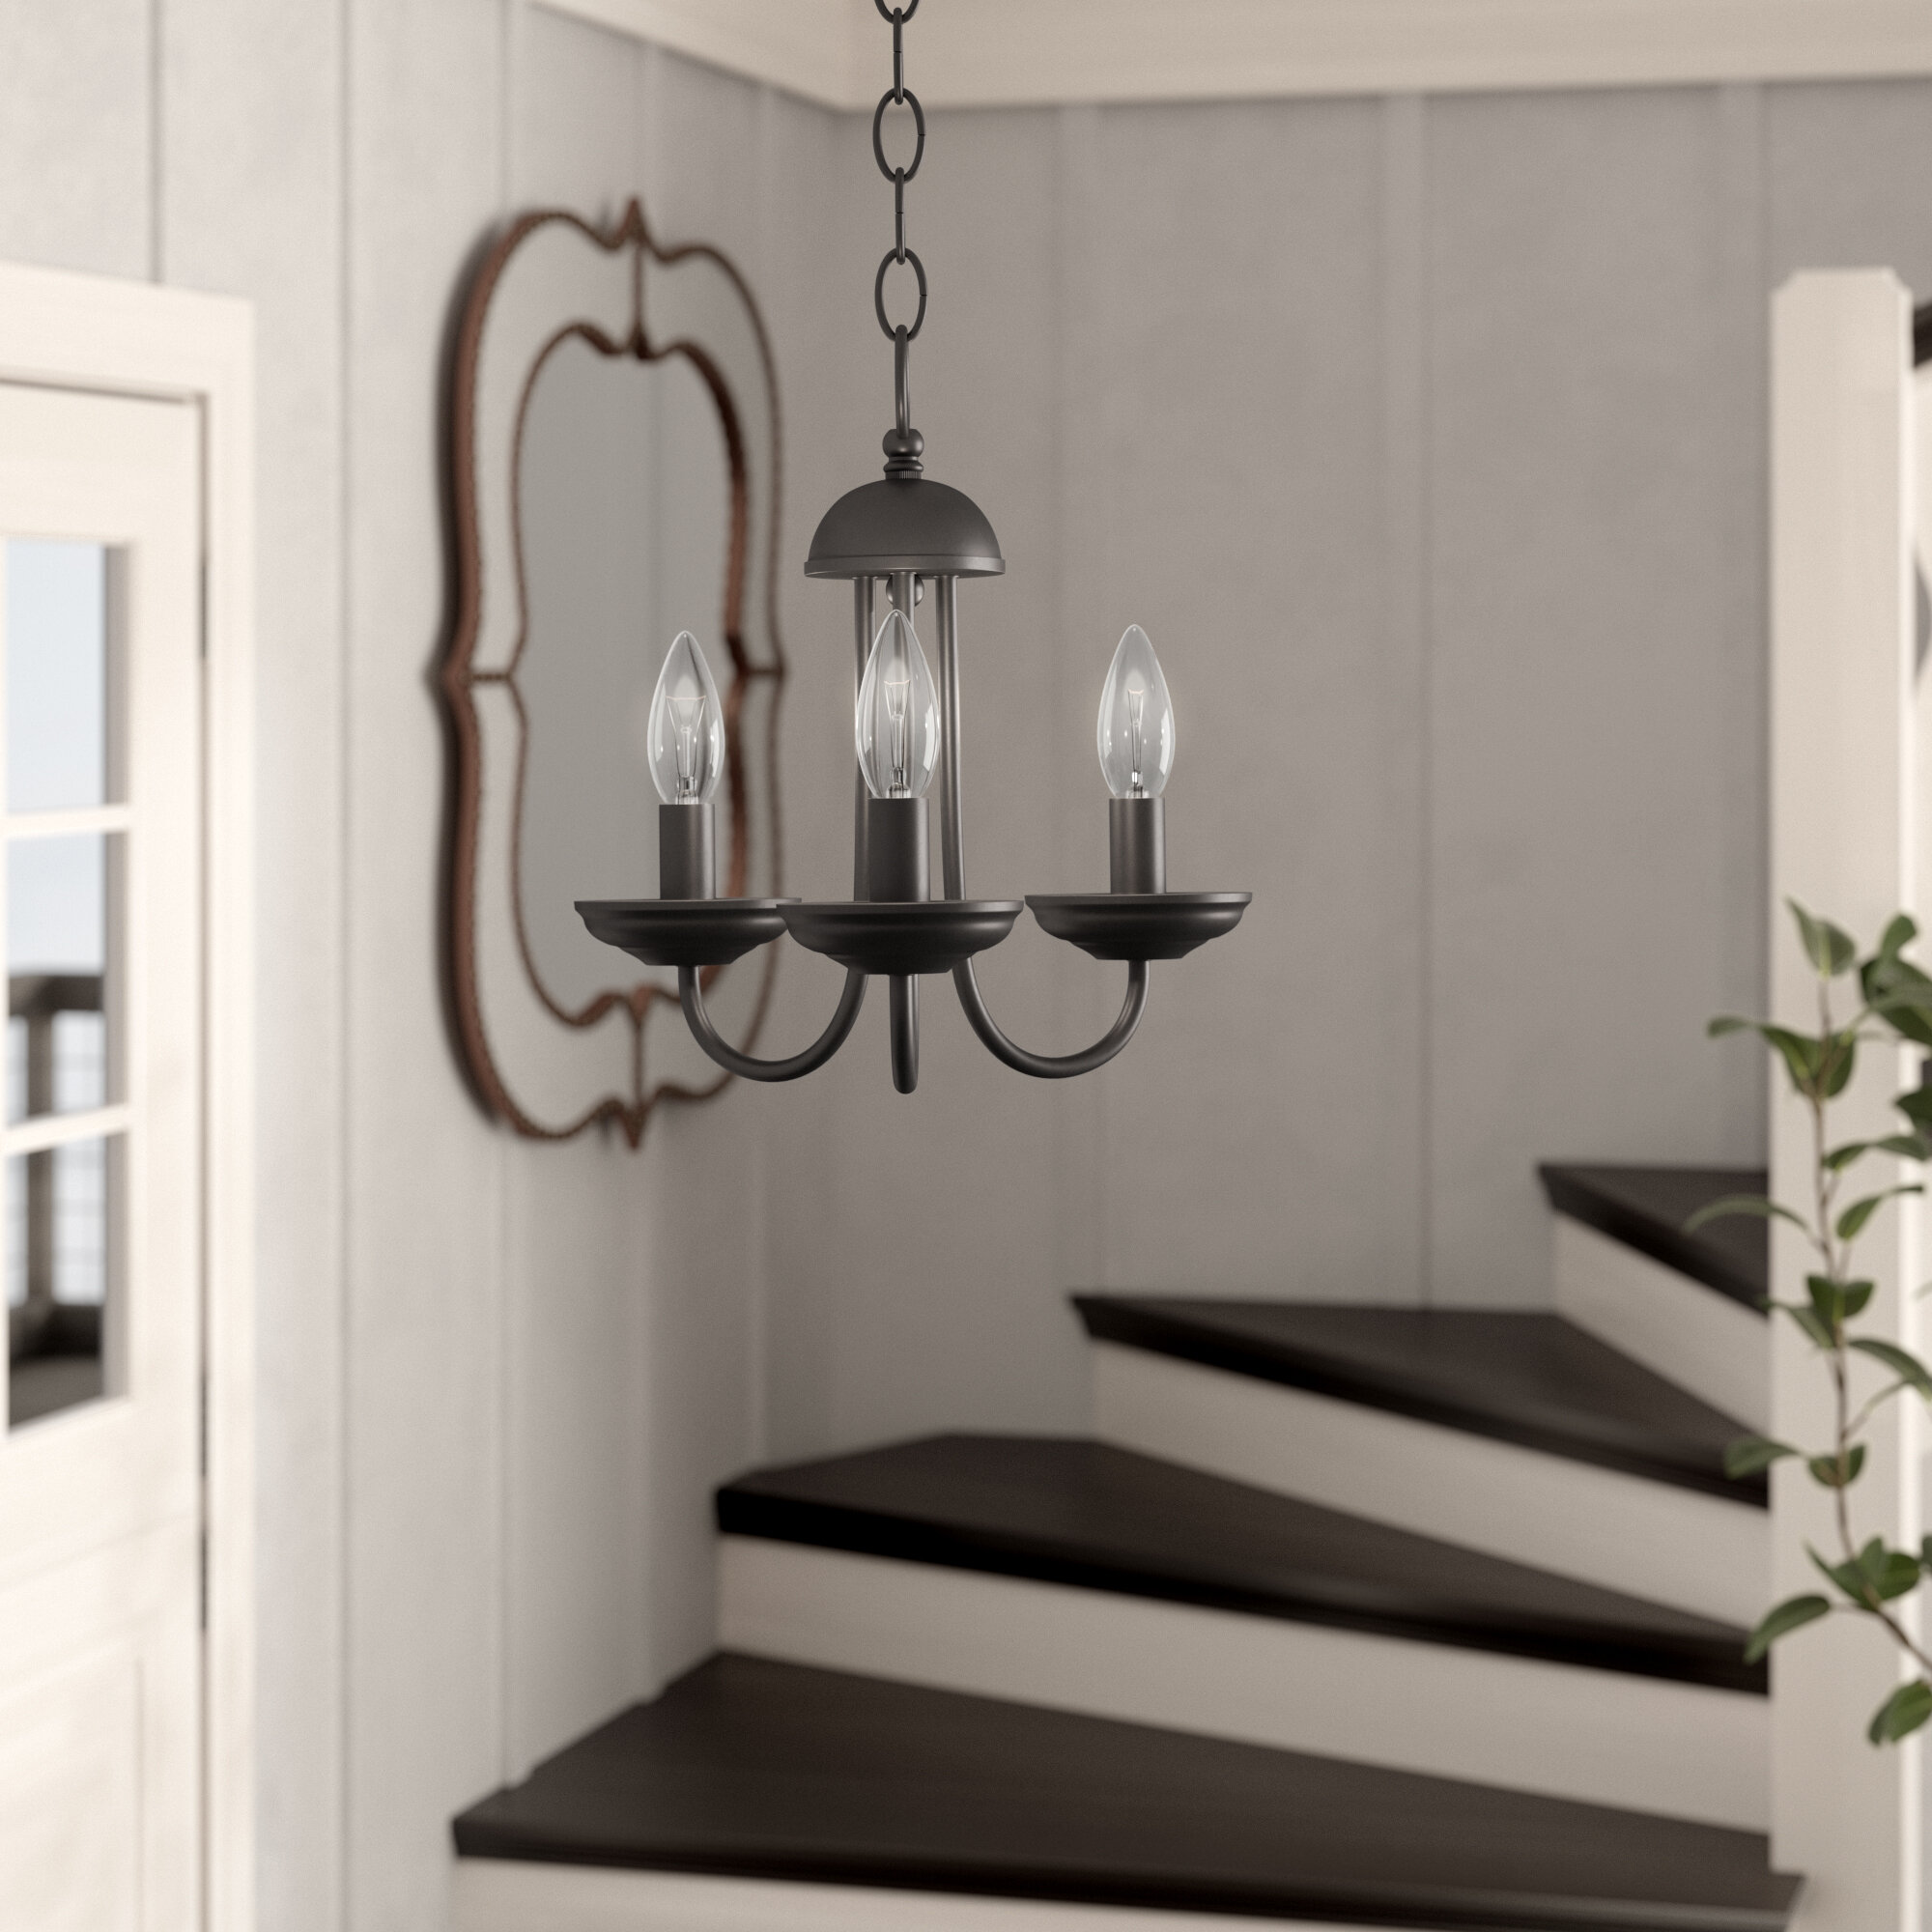 Charlton Home Bordelon 3 Light Candle Style Classic Traditional Chandelier With Rope Accents Reviews Wayfair